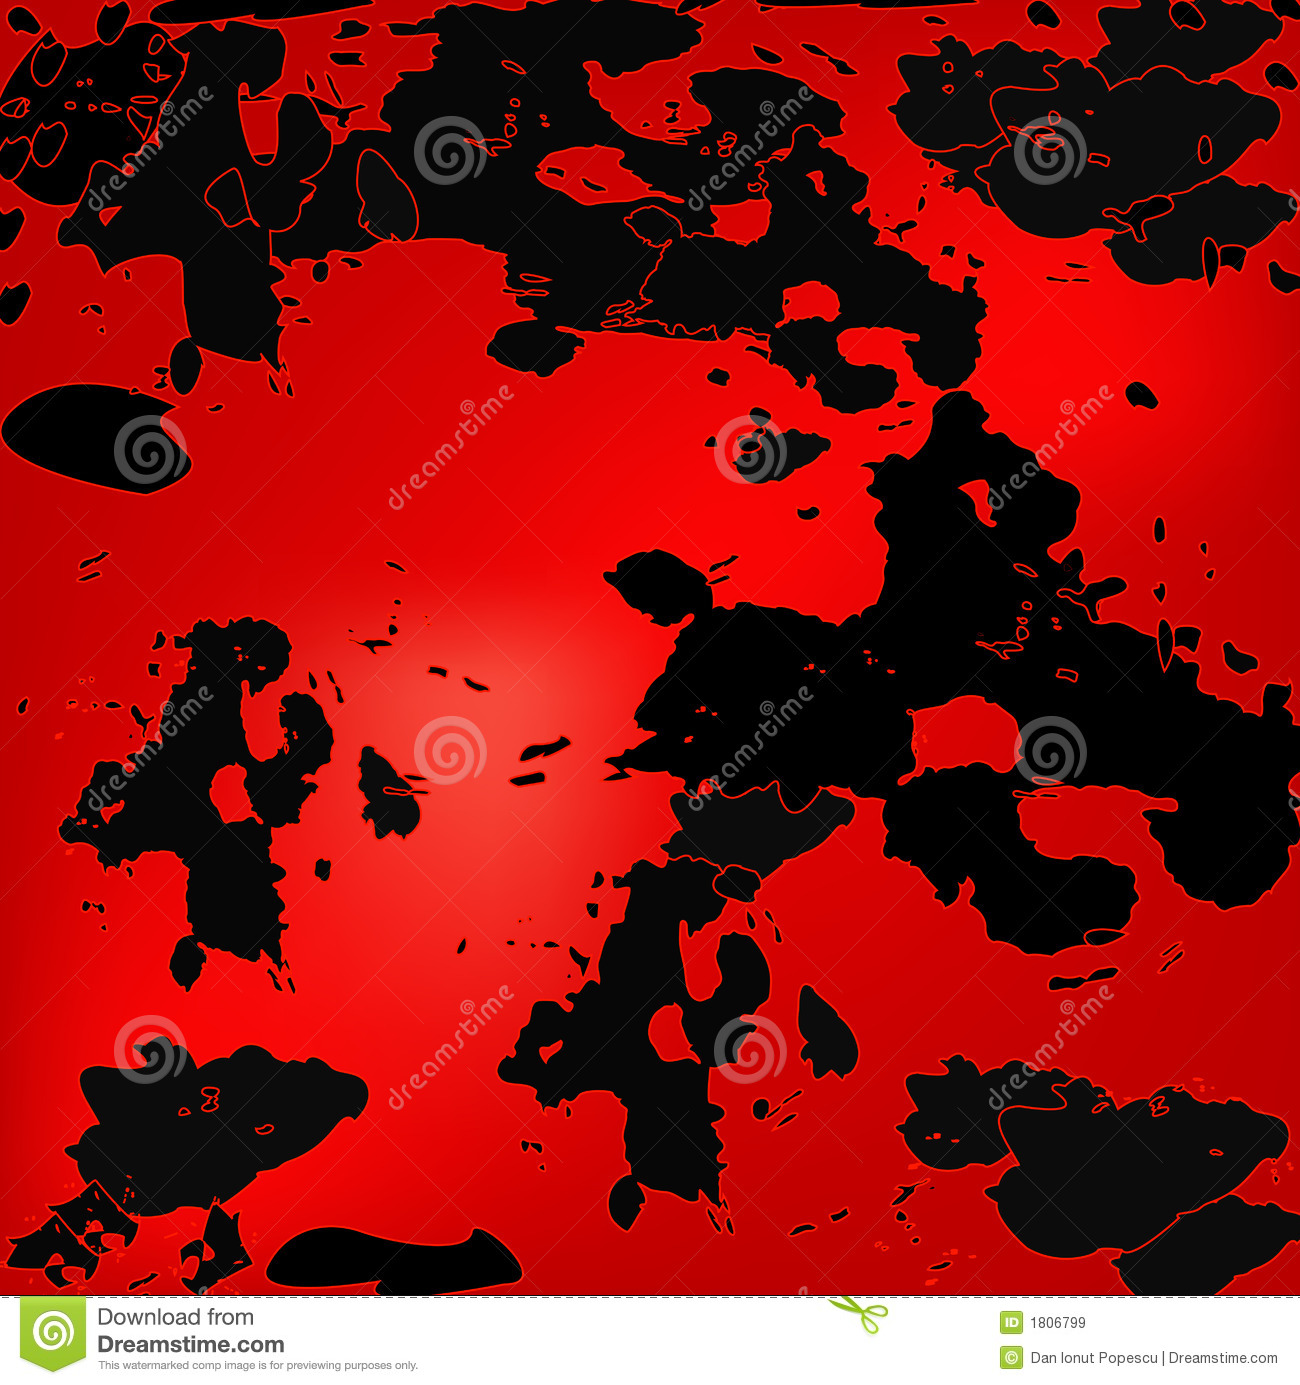 Black And Red Grunge Design Royalty Free Stock Images